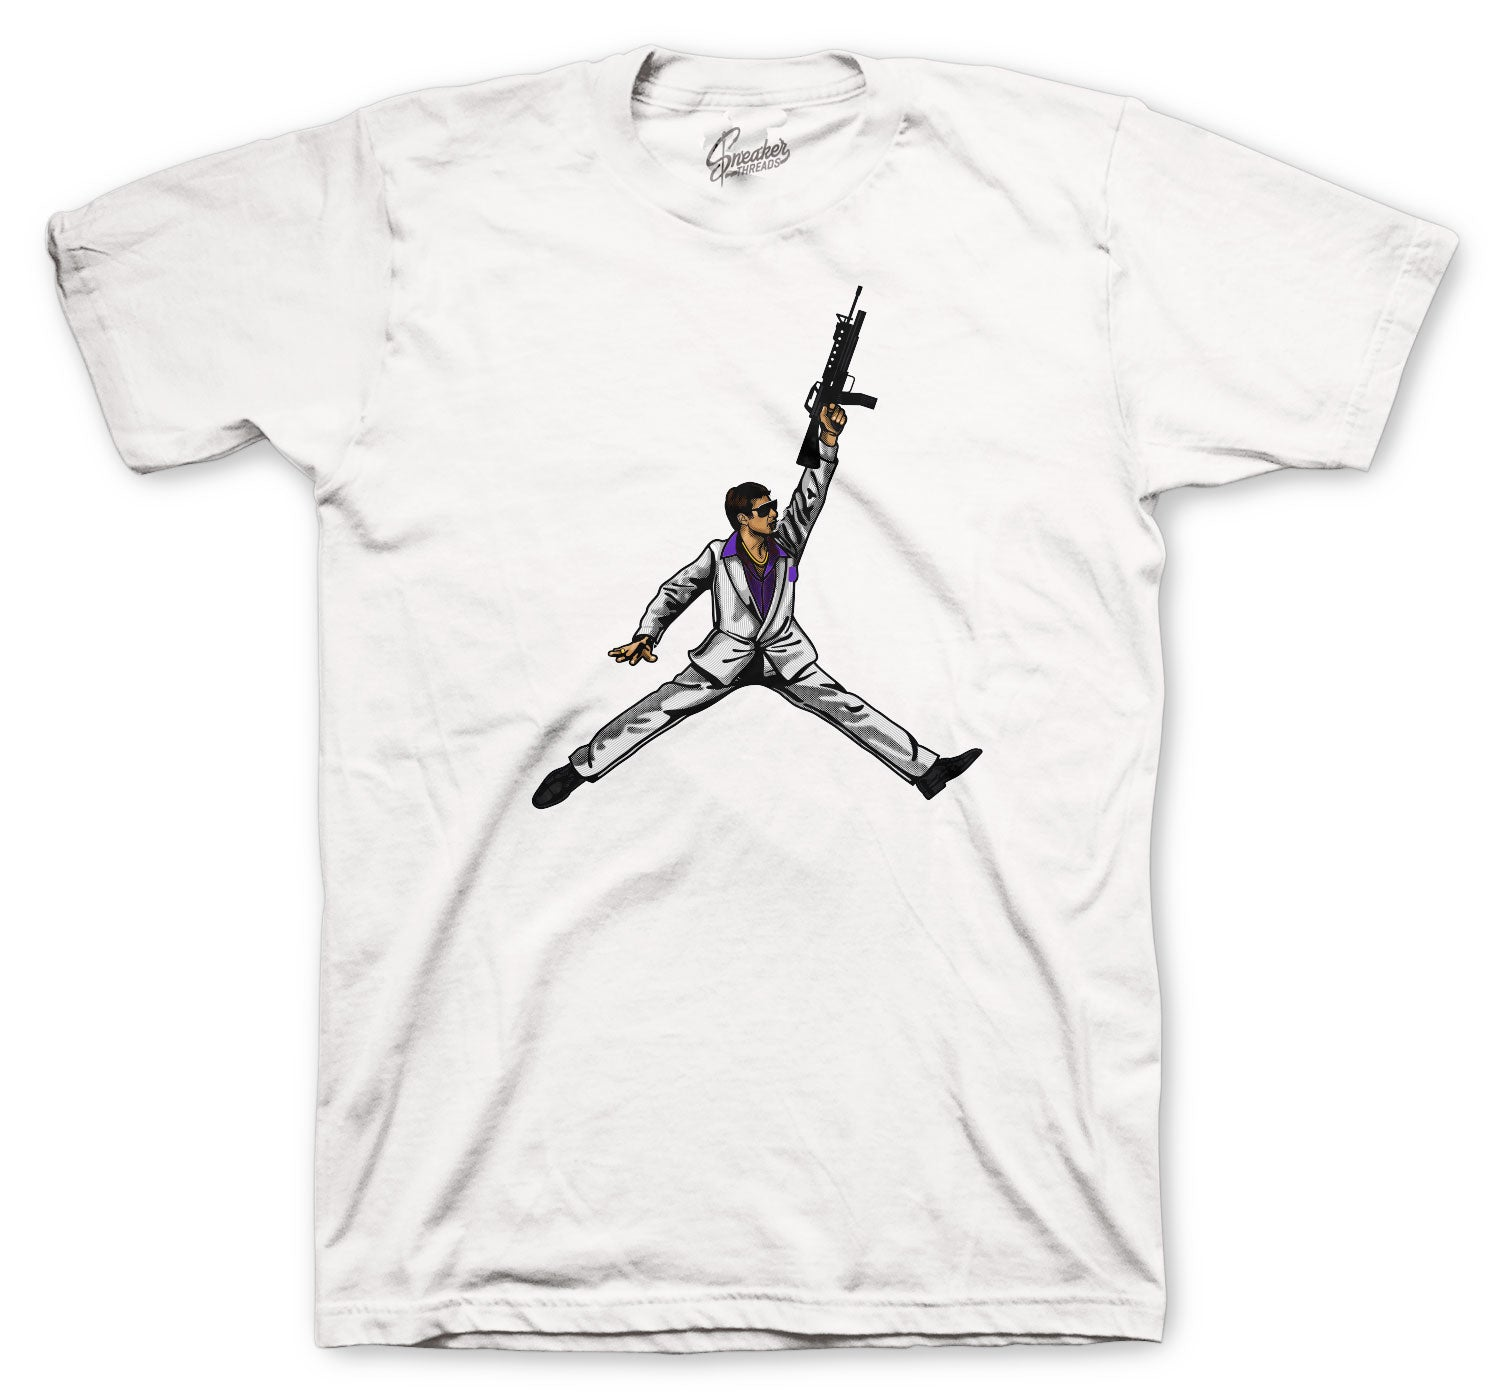 Jordan 11 Low Concord Air Tony Shirt